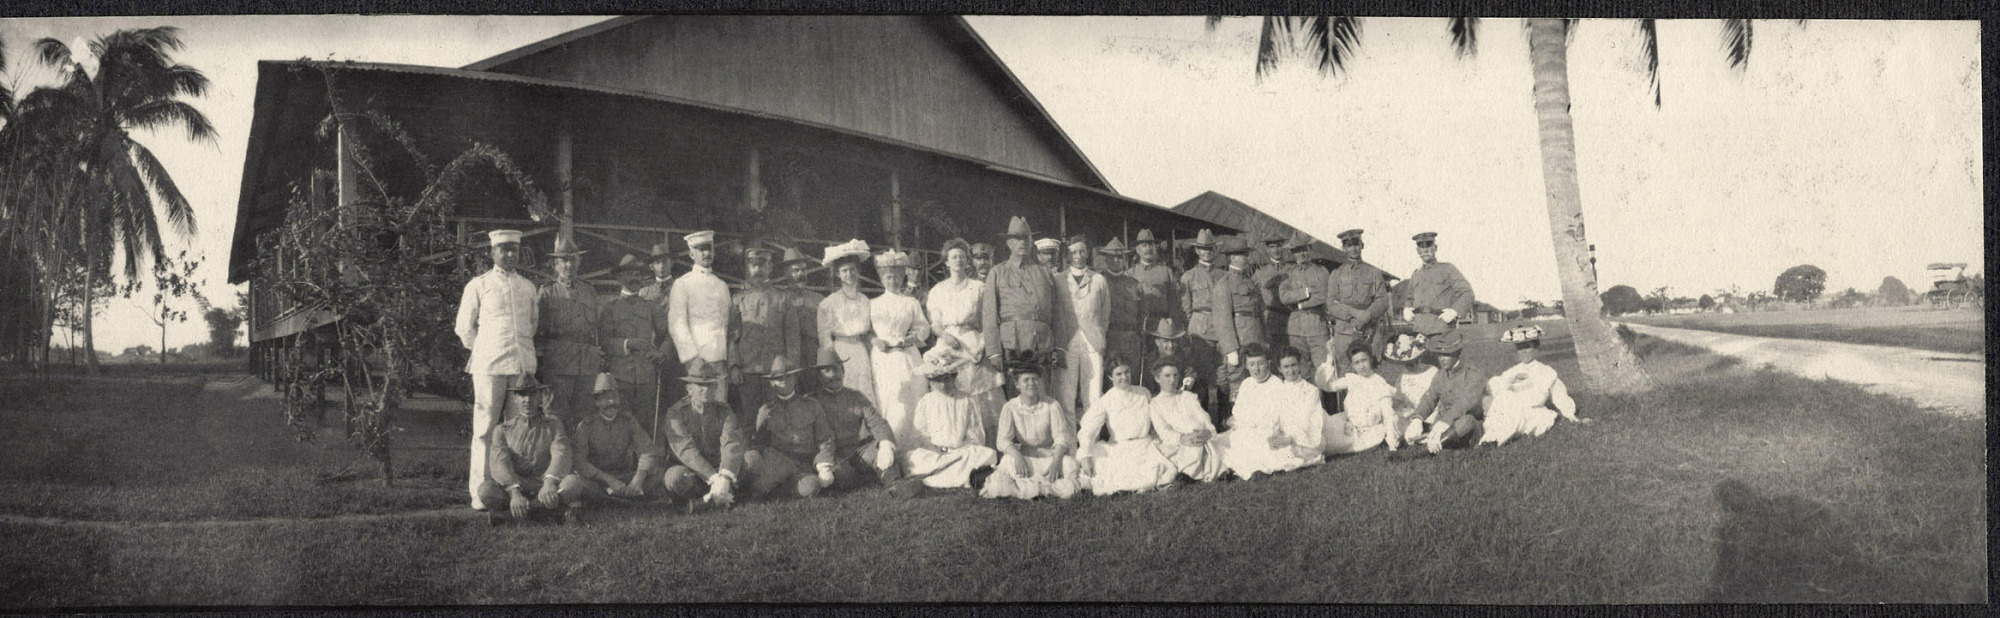 Mindanao: Americans at Camp Overton